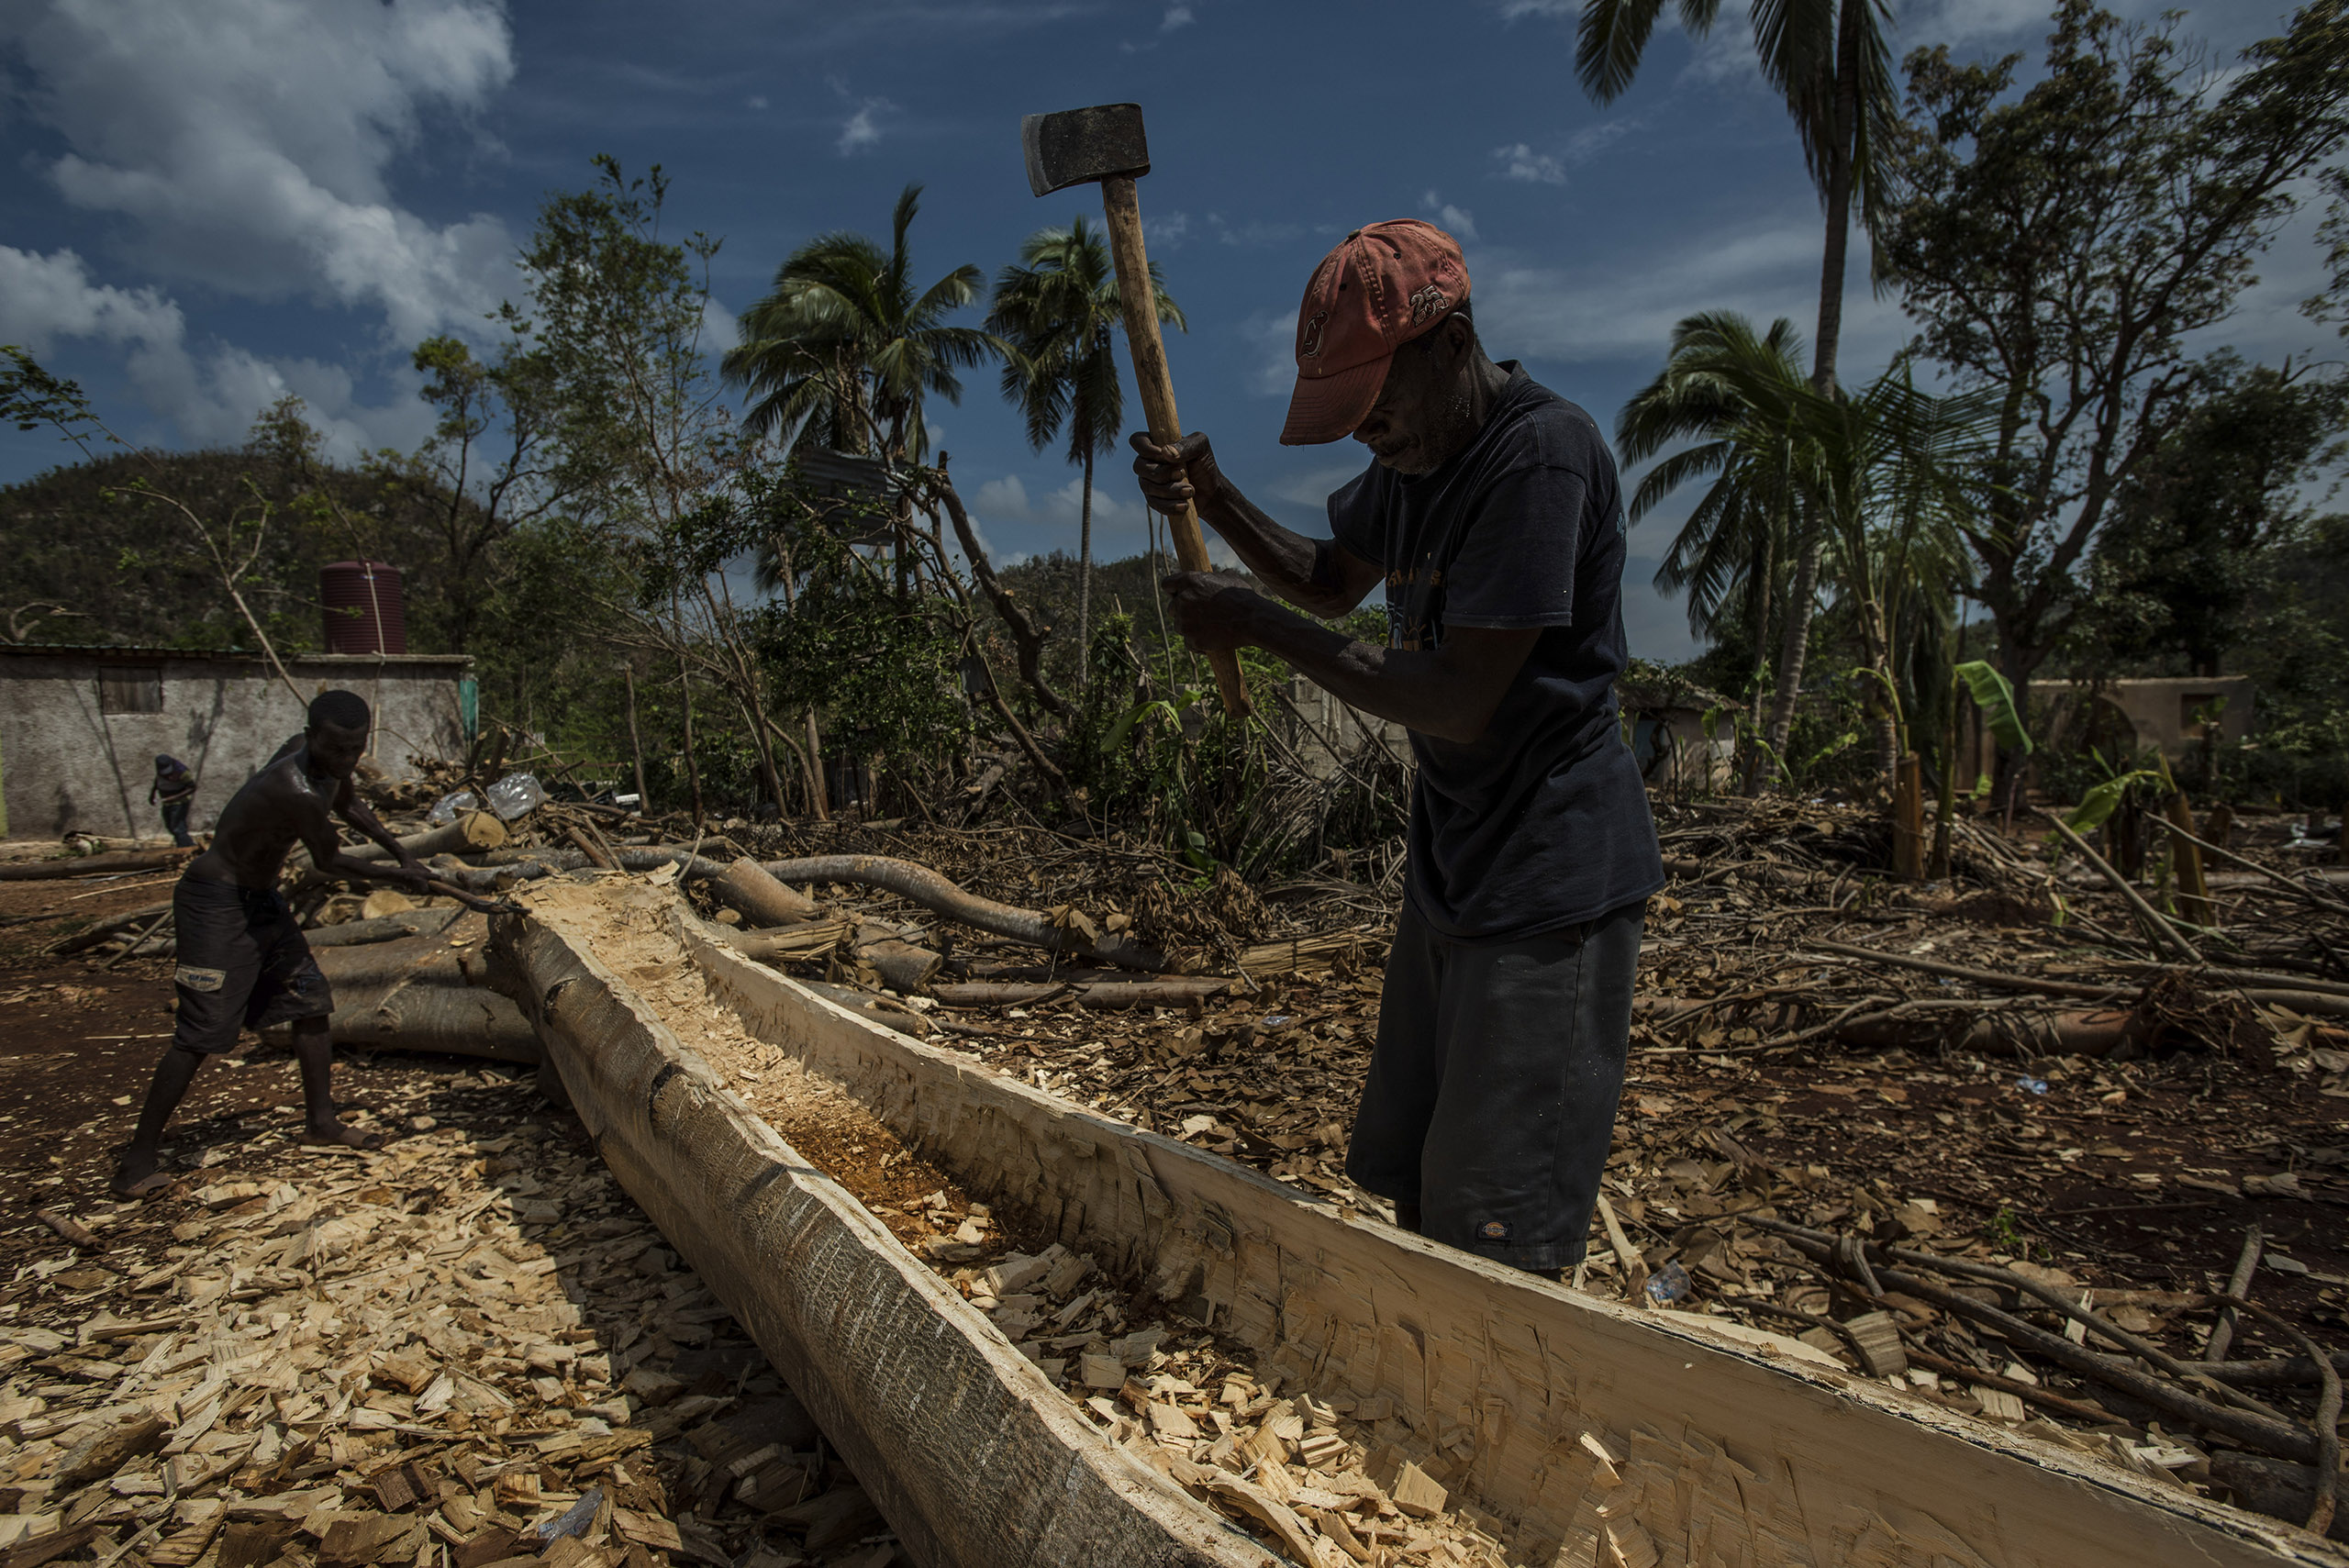 Men make a dugout canoe from a tree felled by Hurricane Matthew in Pestel, Haiti, on Oct. 16, 2016. Like much of the country's southern peninsula, Pestel is writhing beneath the weight of disaster.